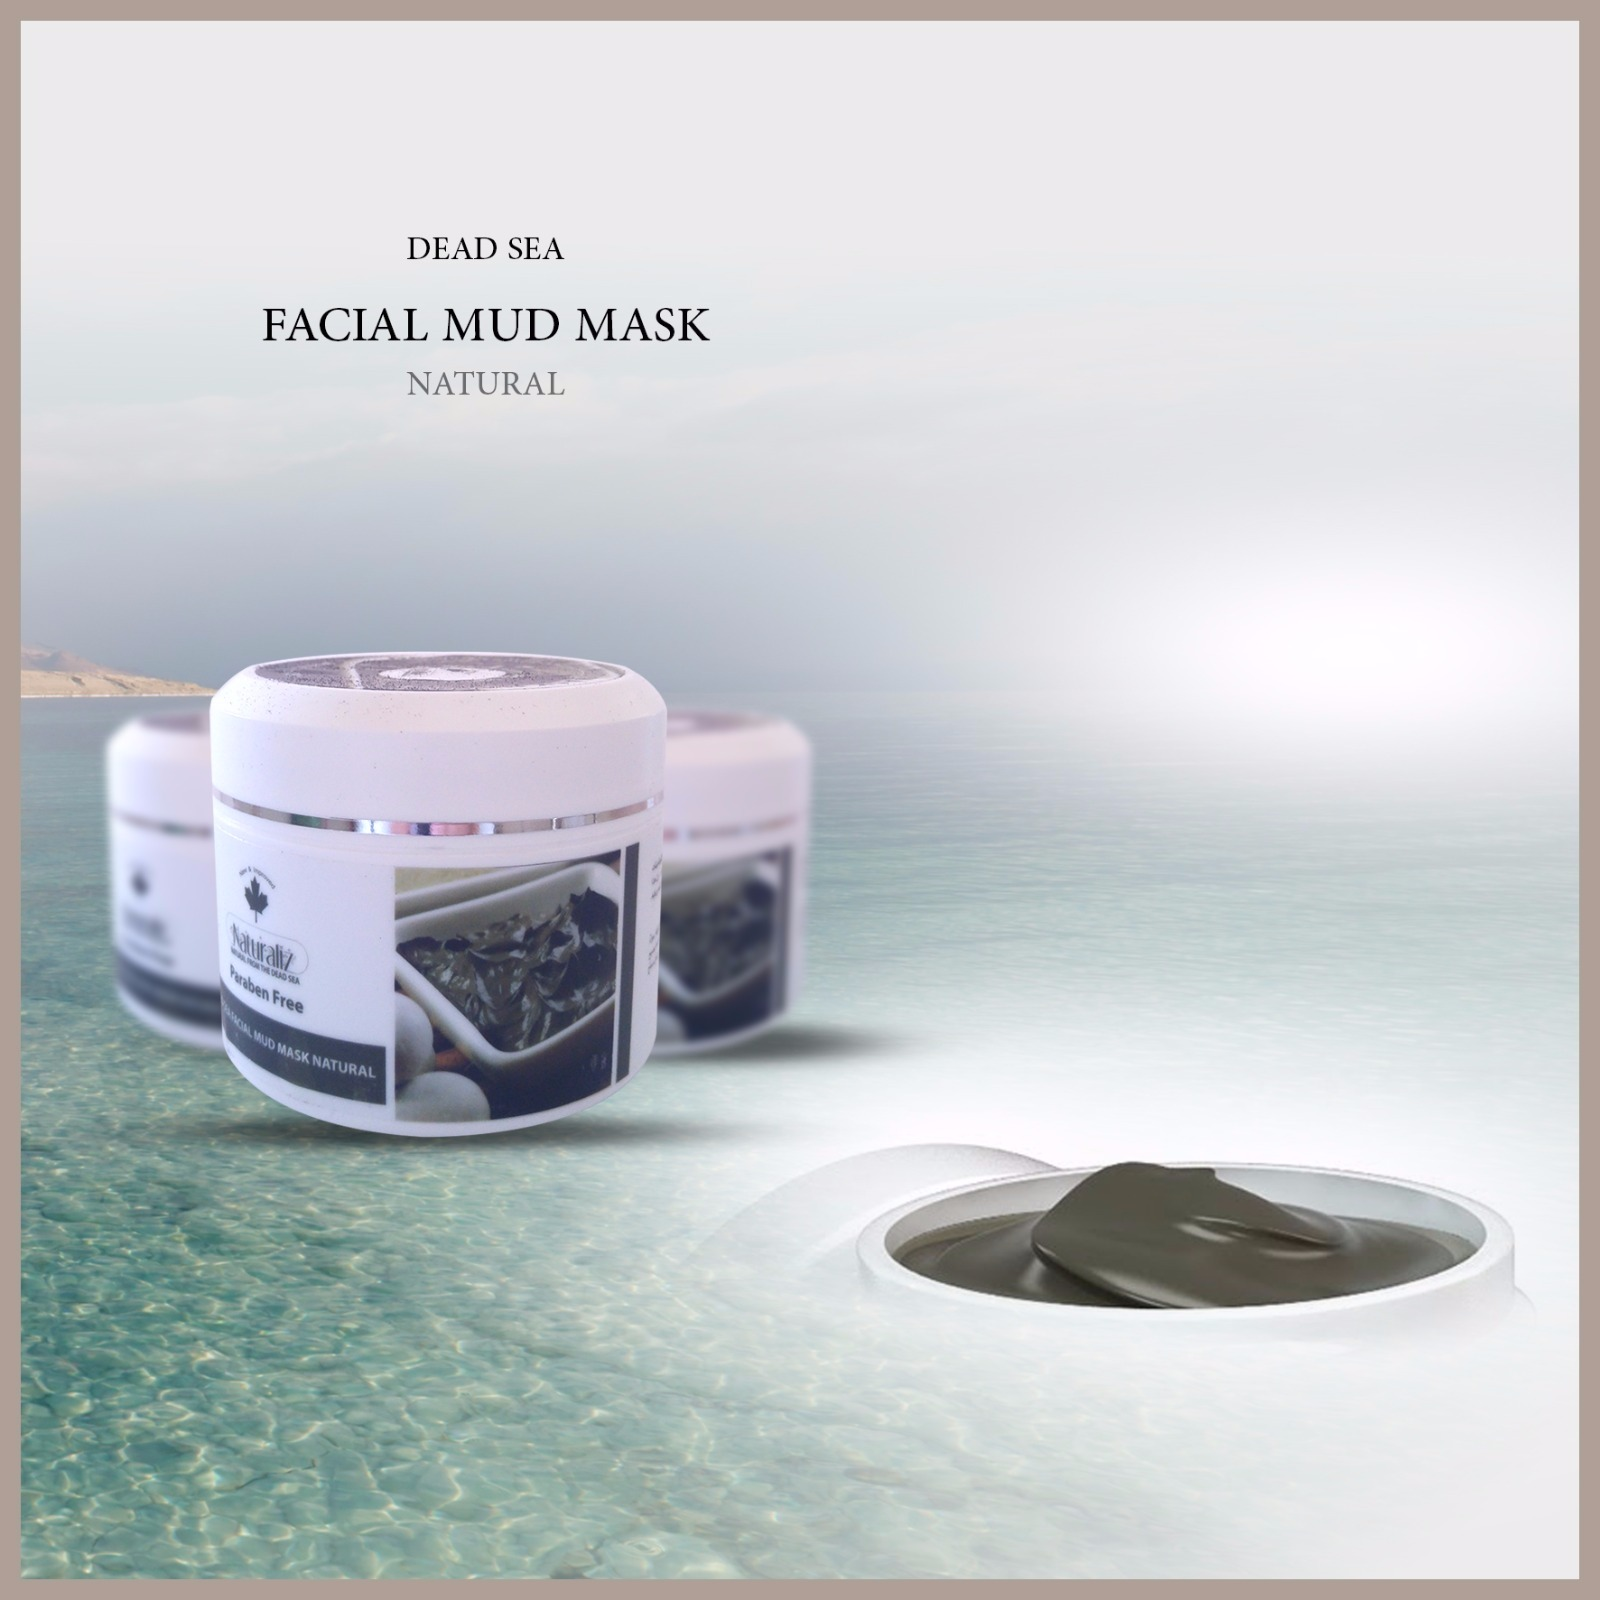 Faical Mud Mask Natural - Jar